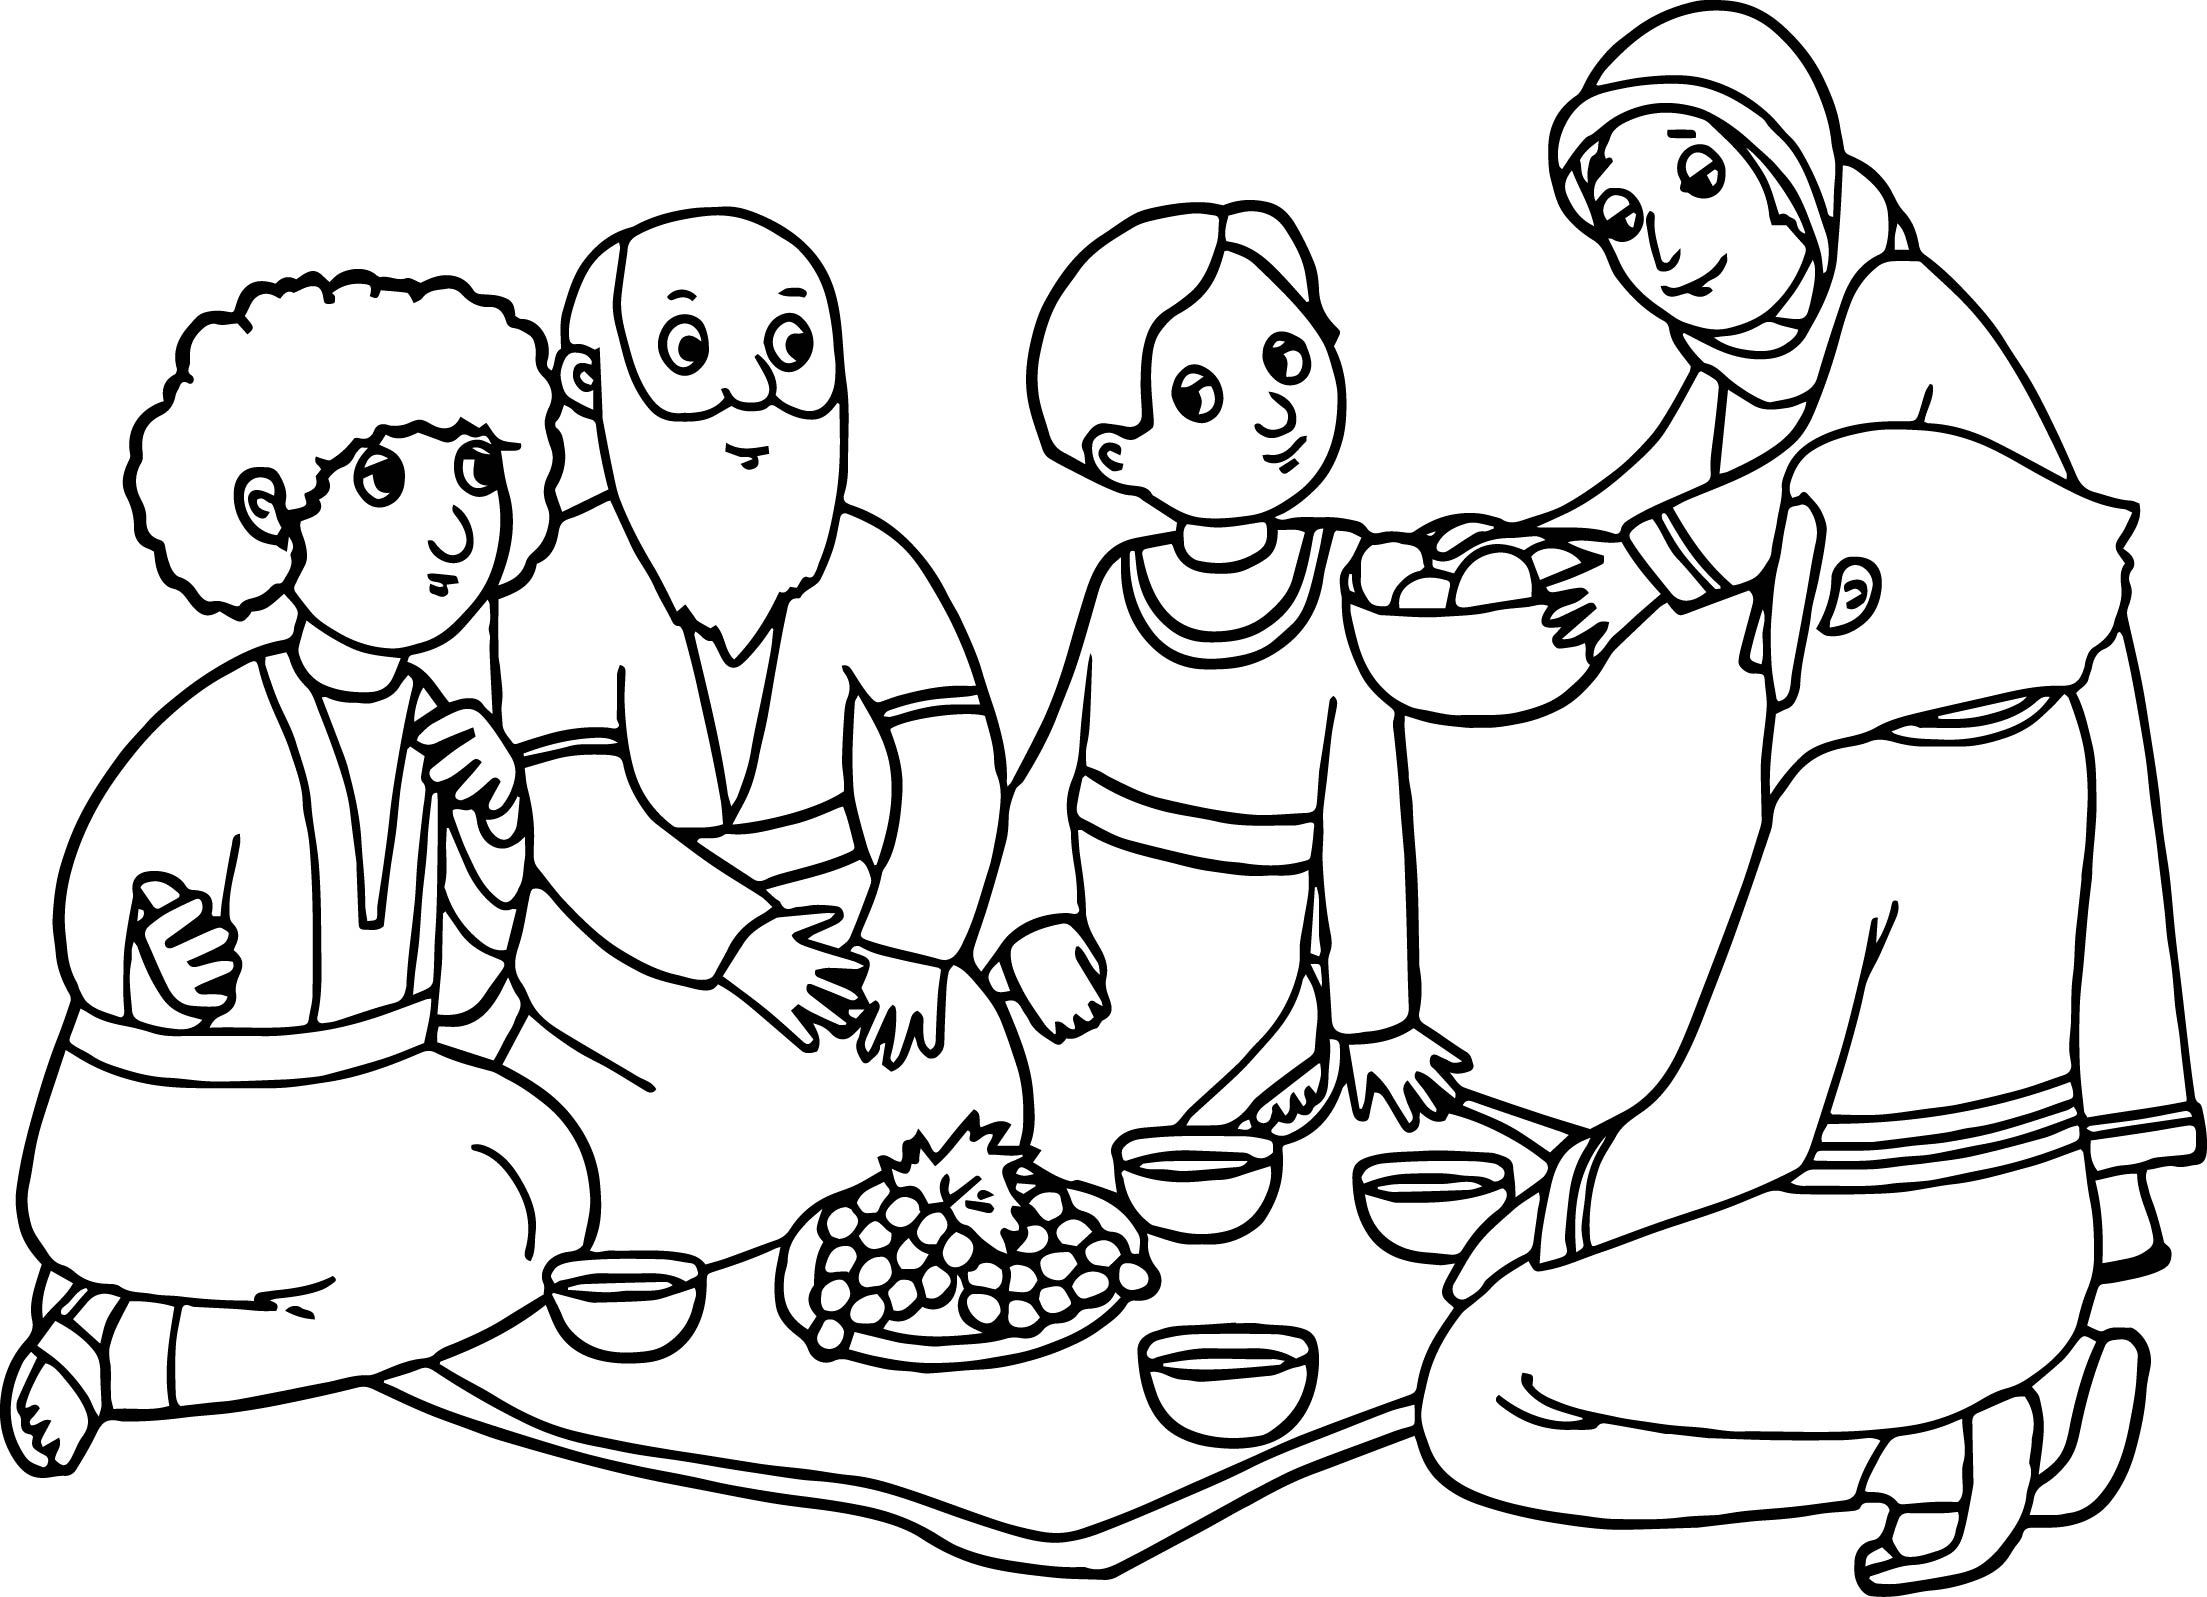 Abraham and Sarah Coloring Pages  Collection 7l - To print for your project